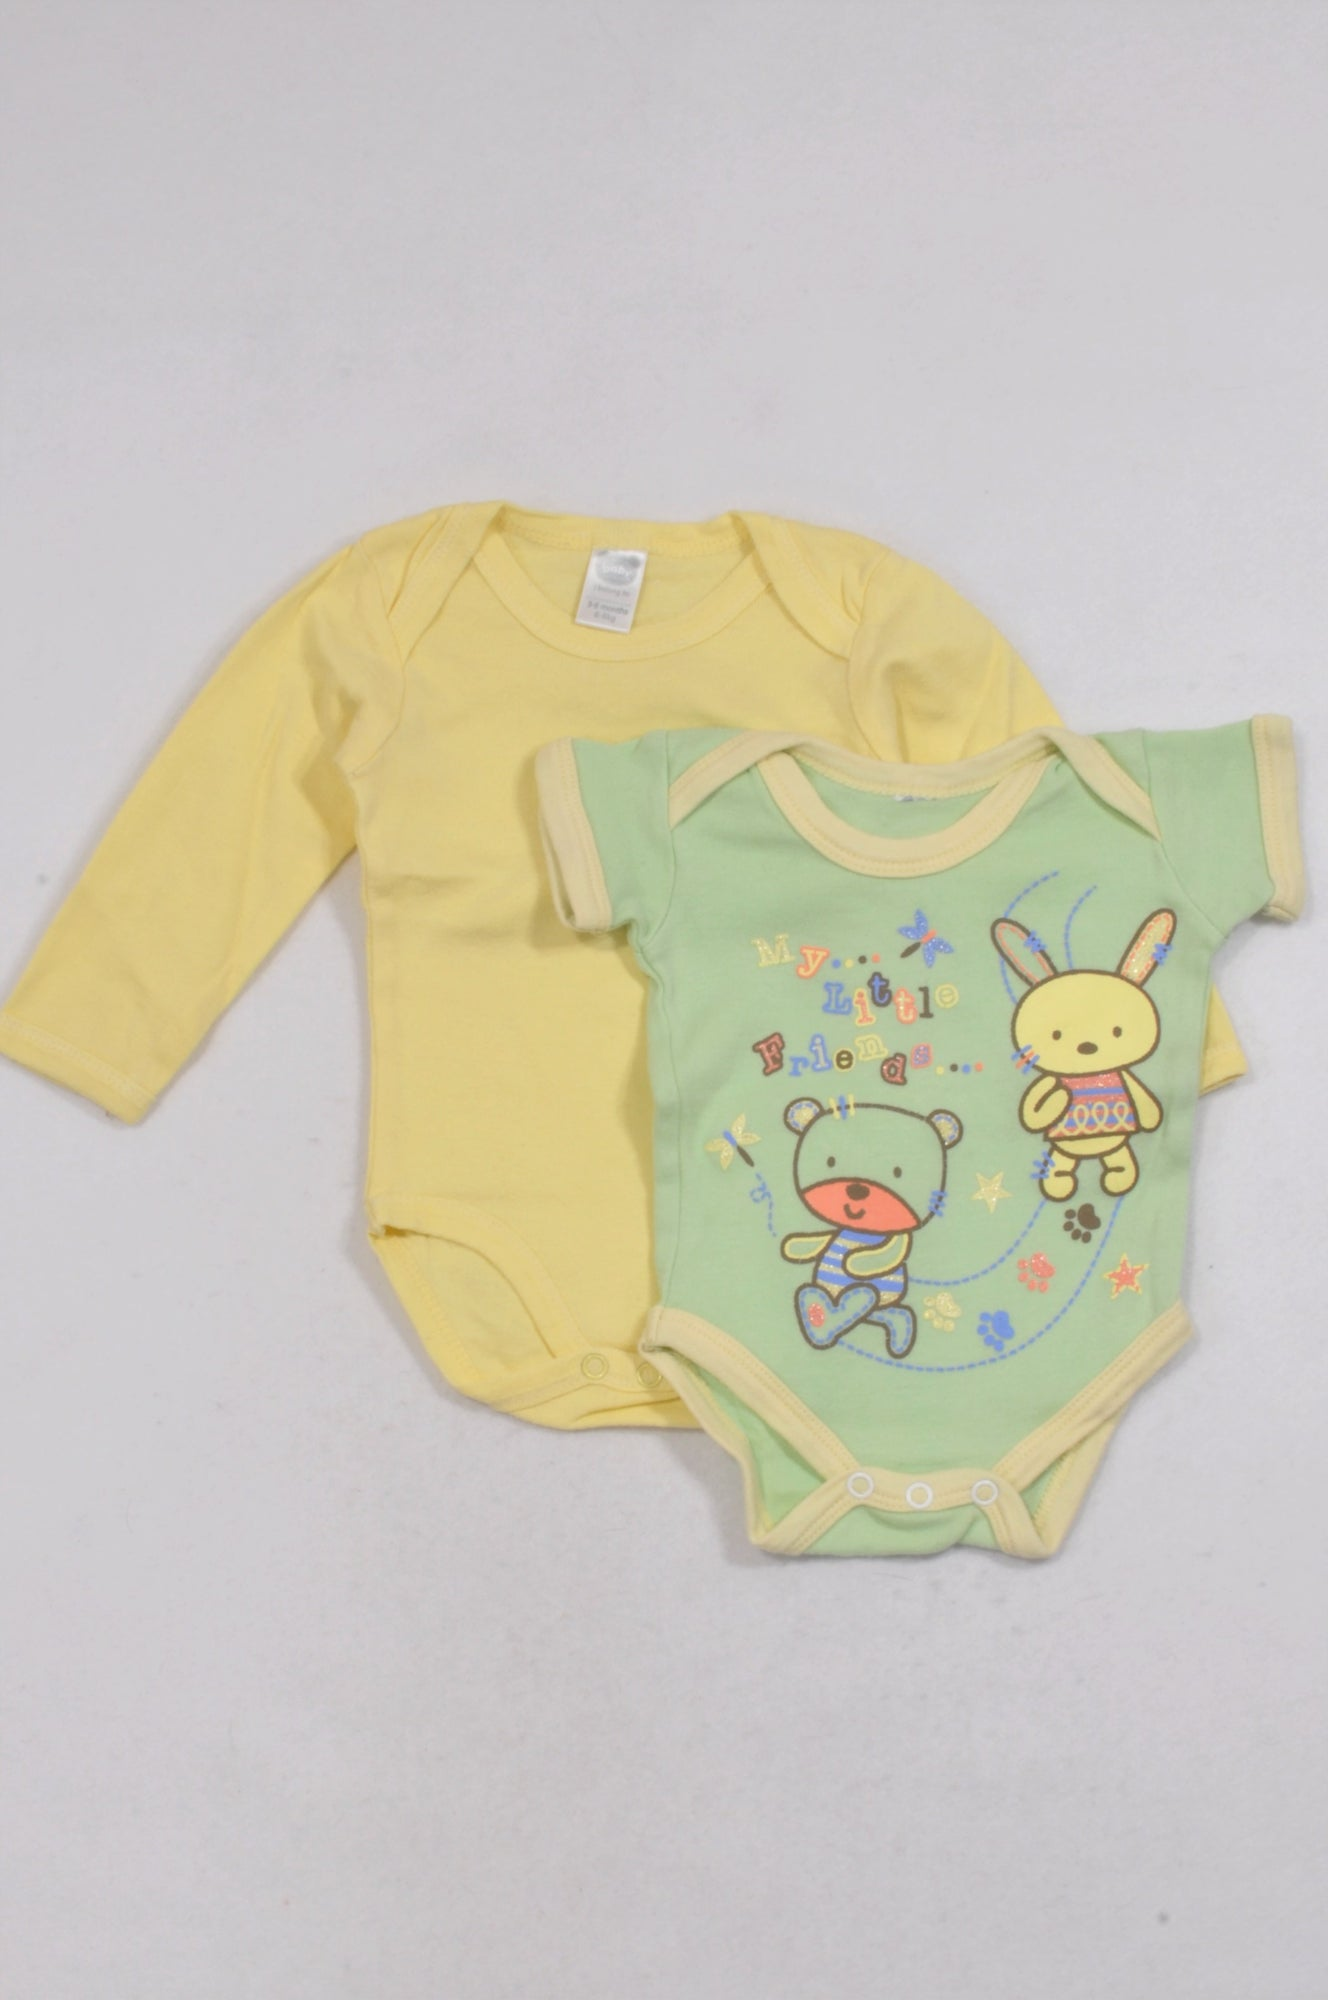 Ackermans 2 Pack Yellow & Green Bunny Baby Grows Unisex 3-6 months